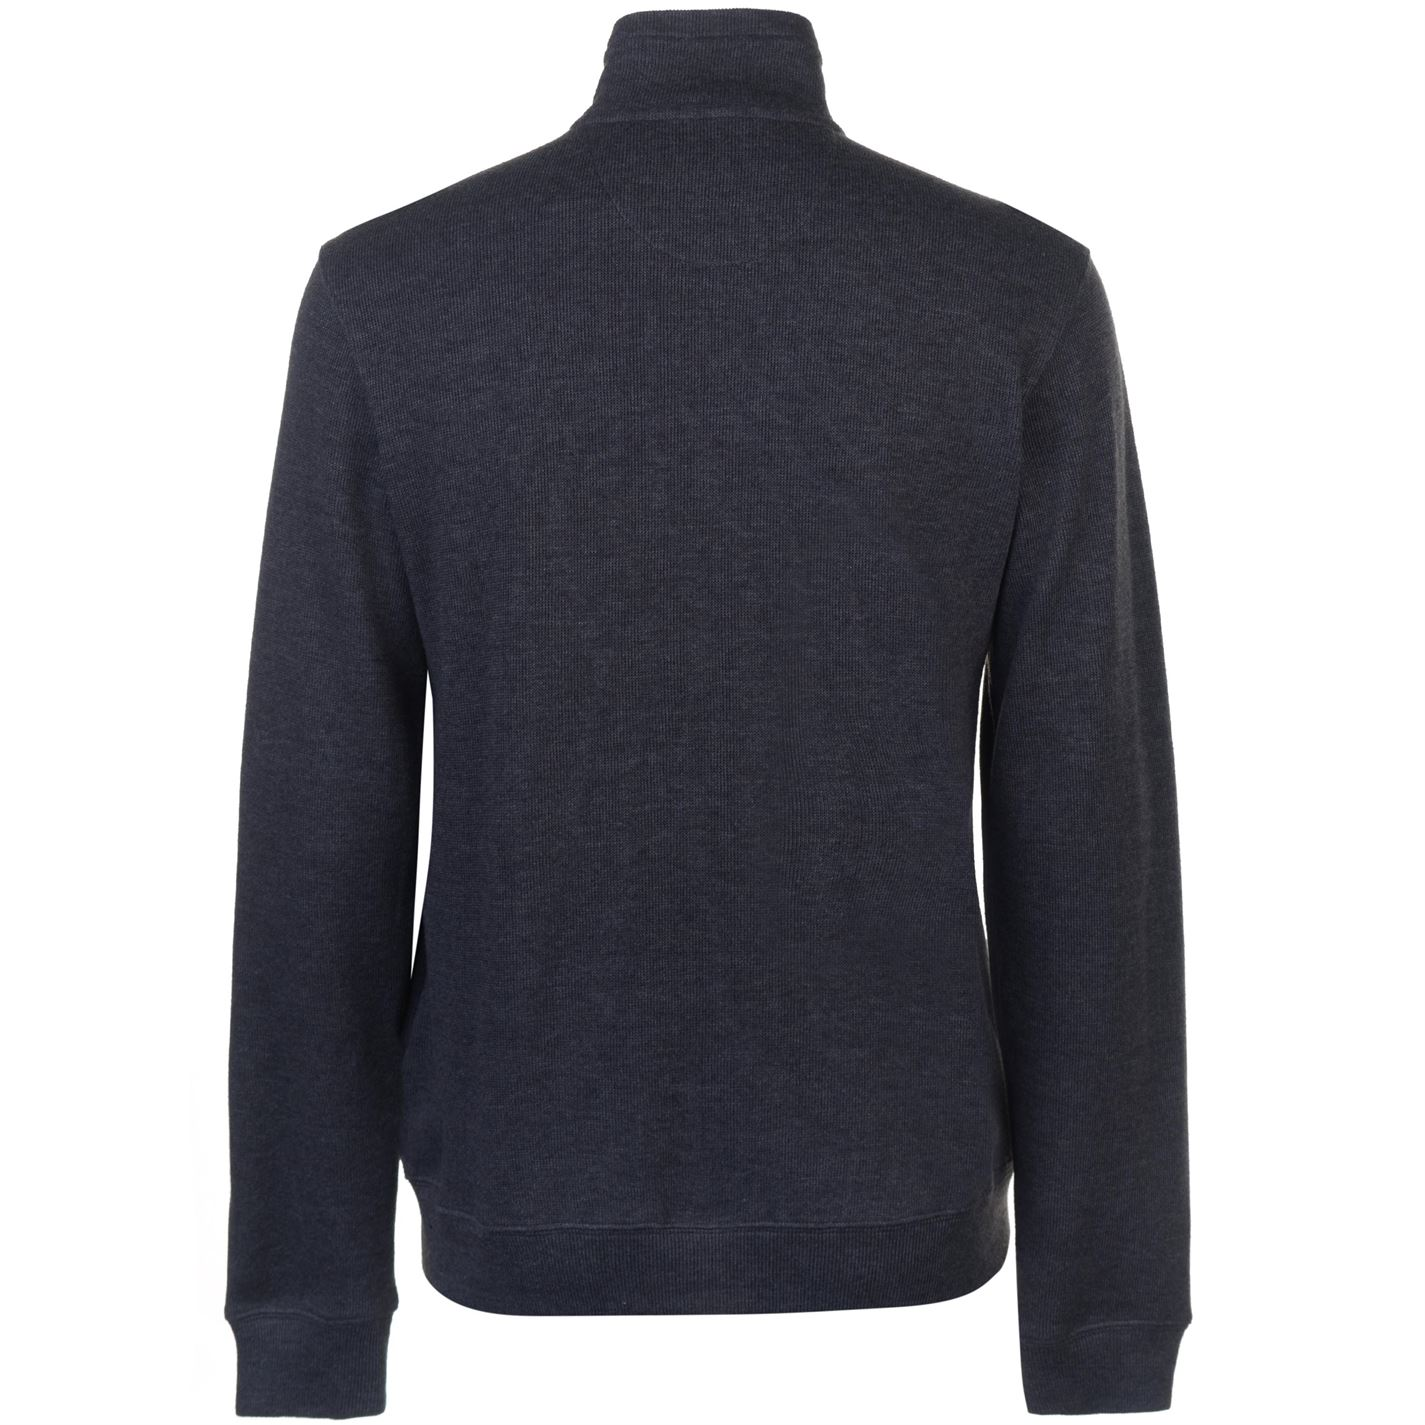 Pierre Cardin Mens Full Zip Ribbed Knit Sweater Jumper Pullover Long Sleeve High